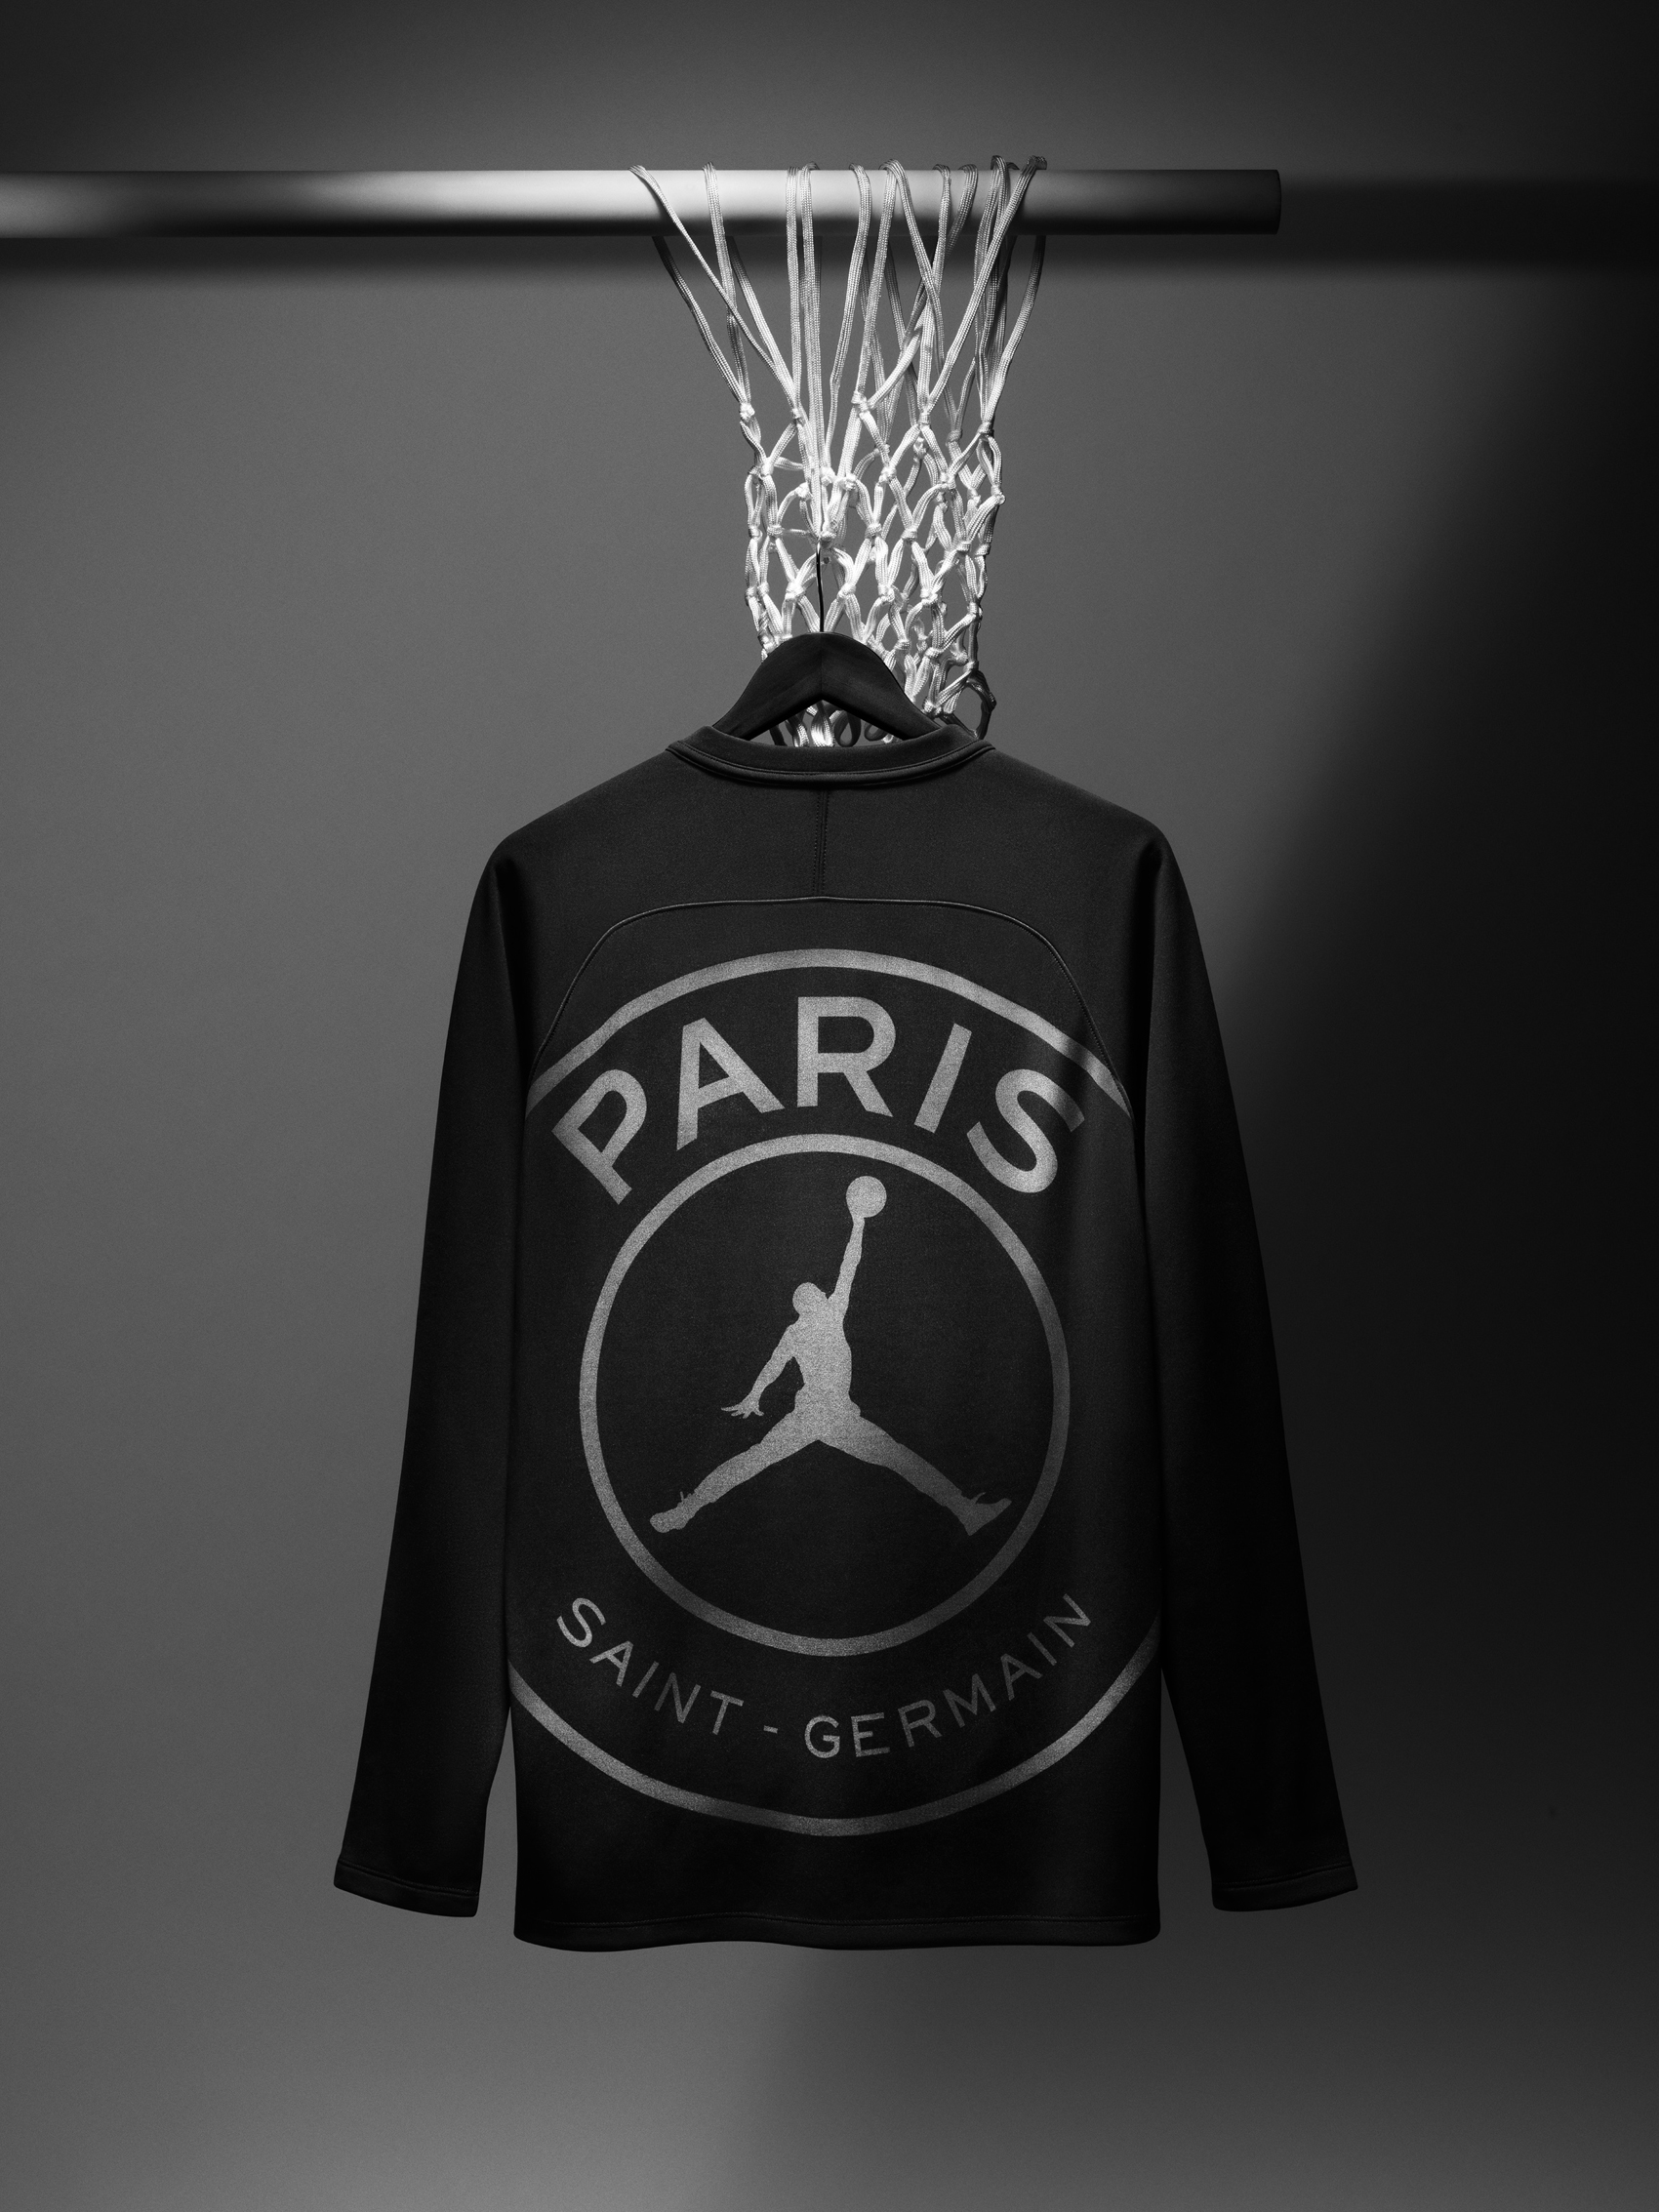 jordan-psg-paris-st-germain-shirt